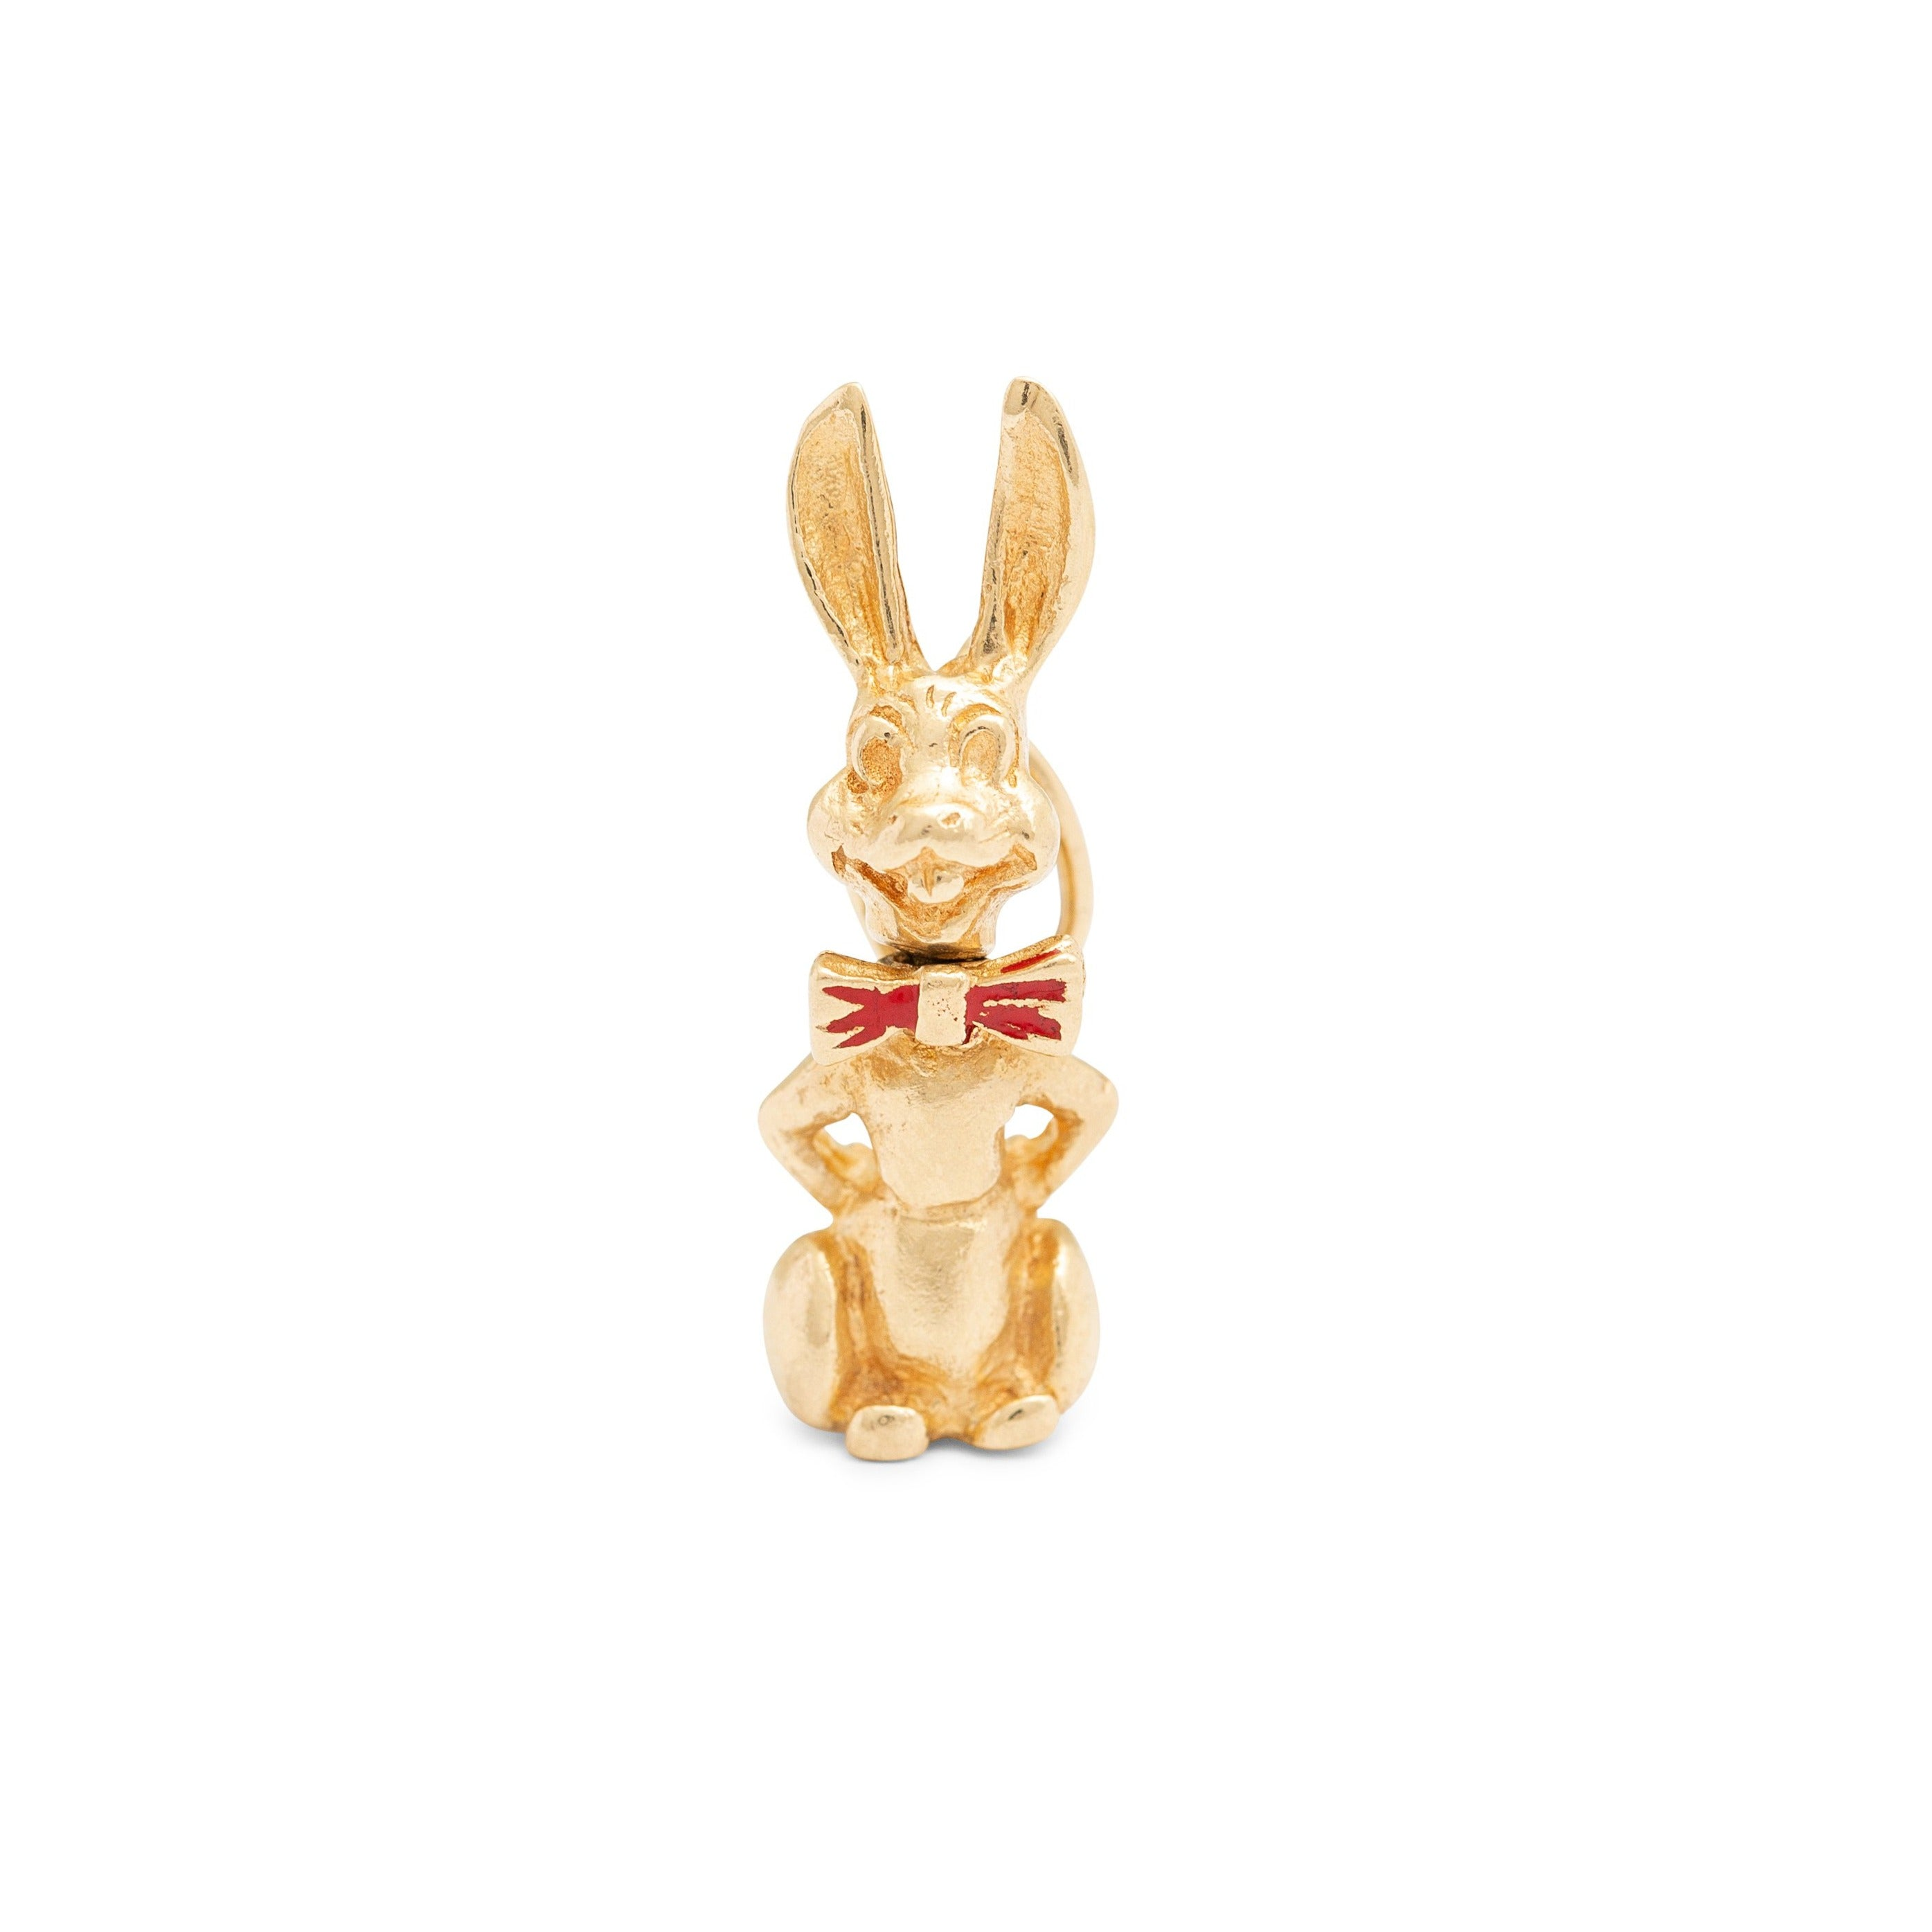 Movable Bunny 14k Gold and Enamel Charm